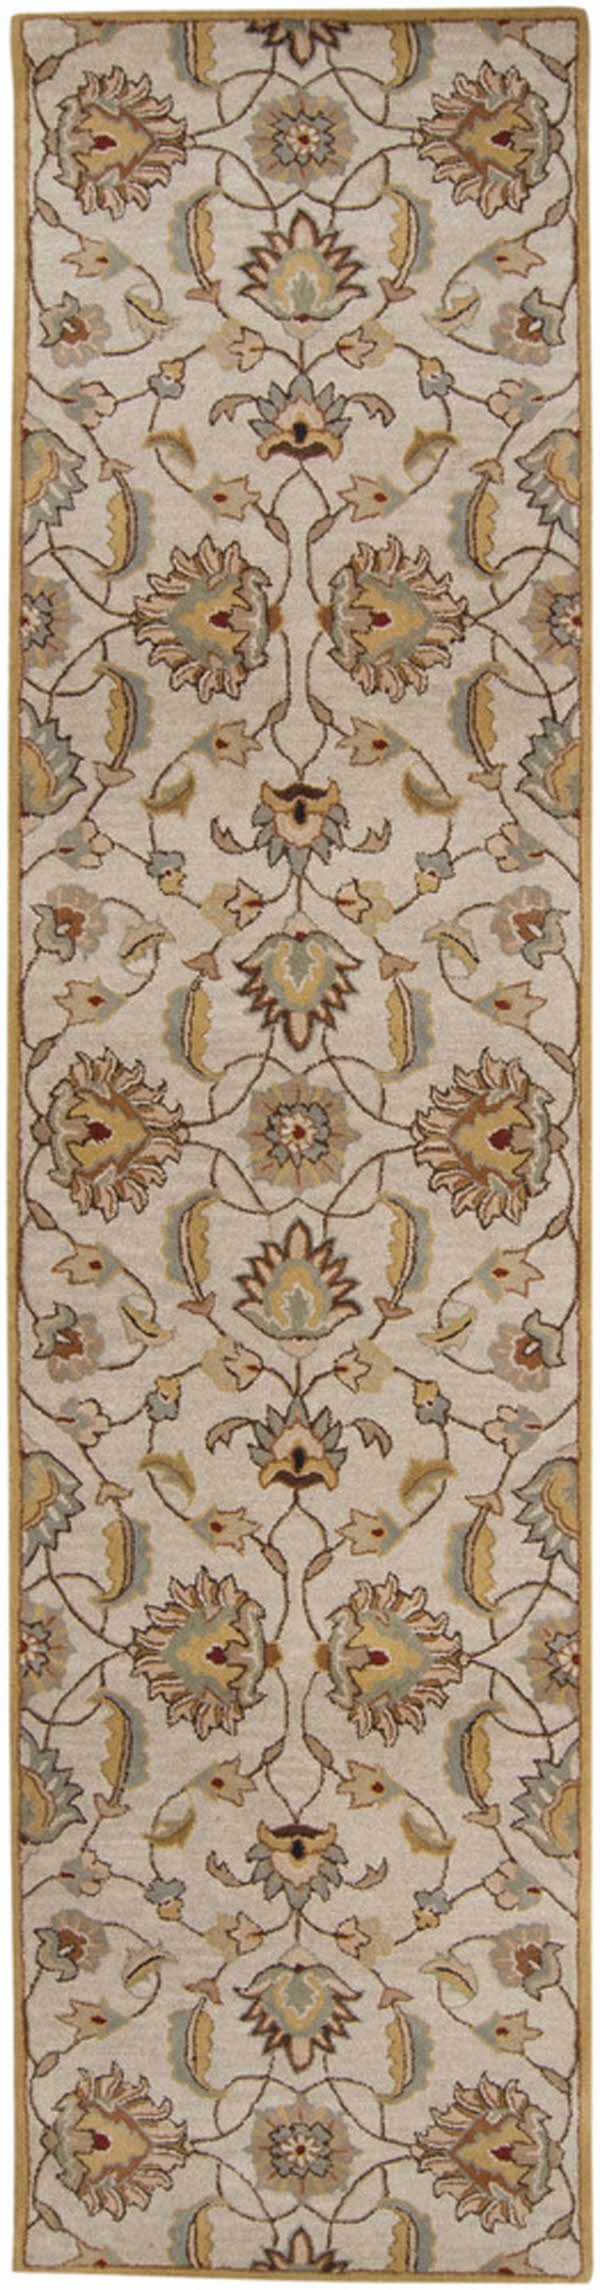 Blush, Camel, Taupe, Black, Teal Traditional / Oriental Area Rug